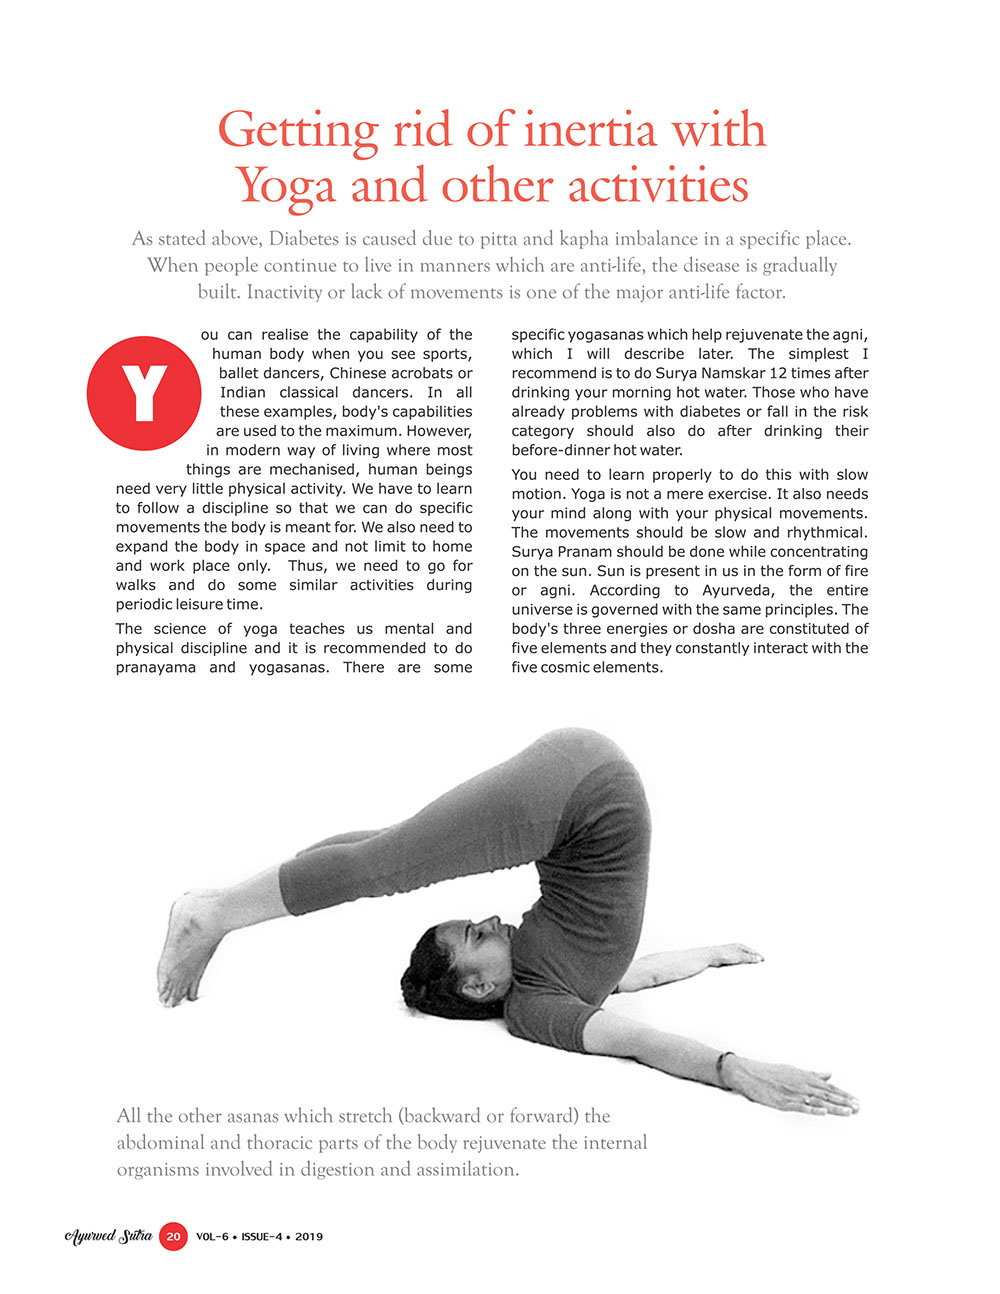 Ayurvedsutra Vol 06 issue 04 22 - Getting rid of inertia with Yoga and other activities